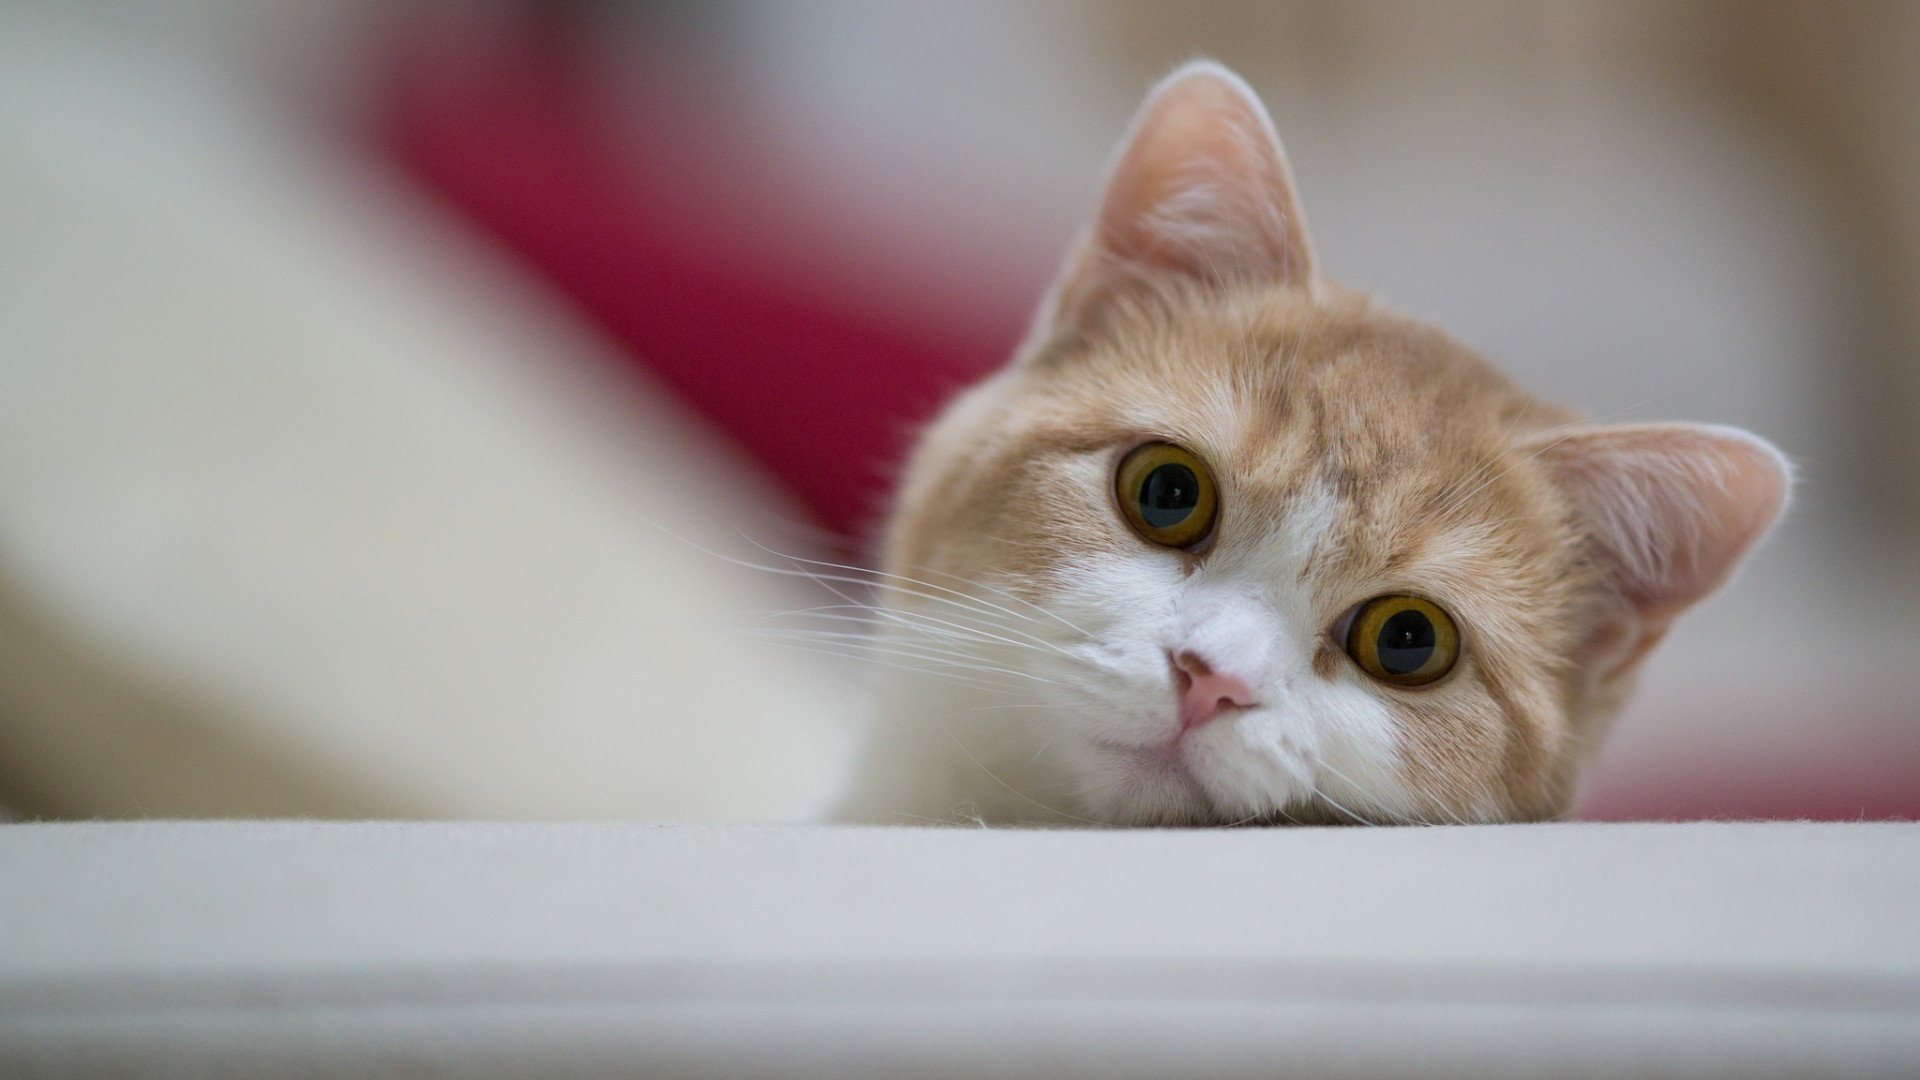 60 Cat Wallpapers 1 Download Free Awesome Full HD For